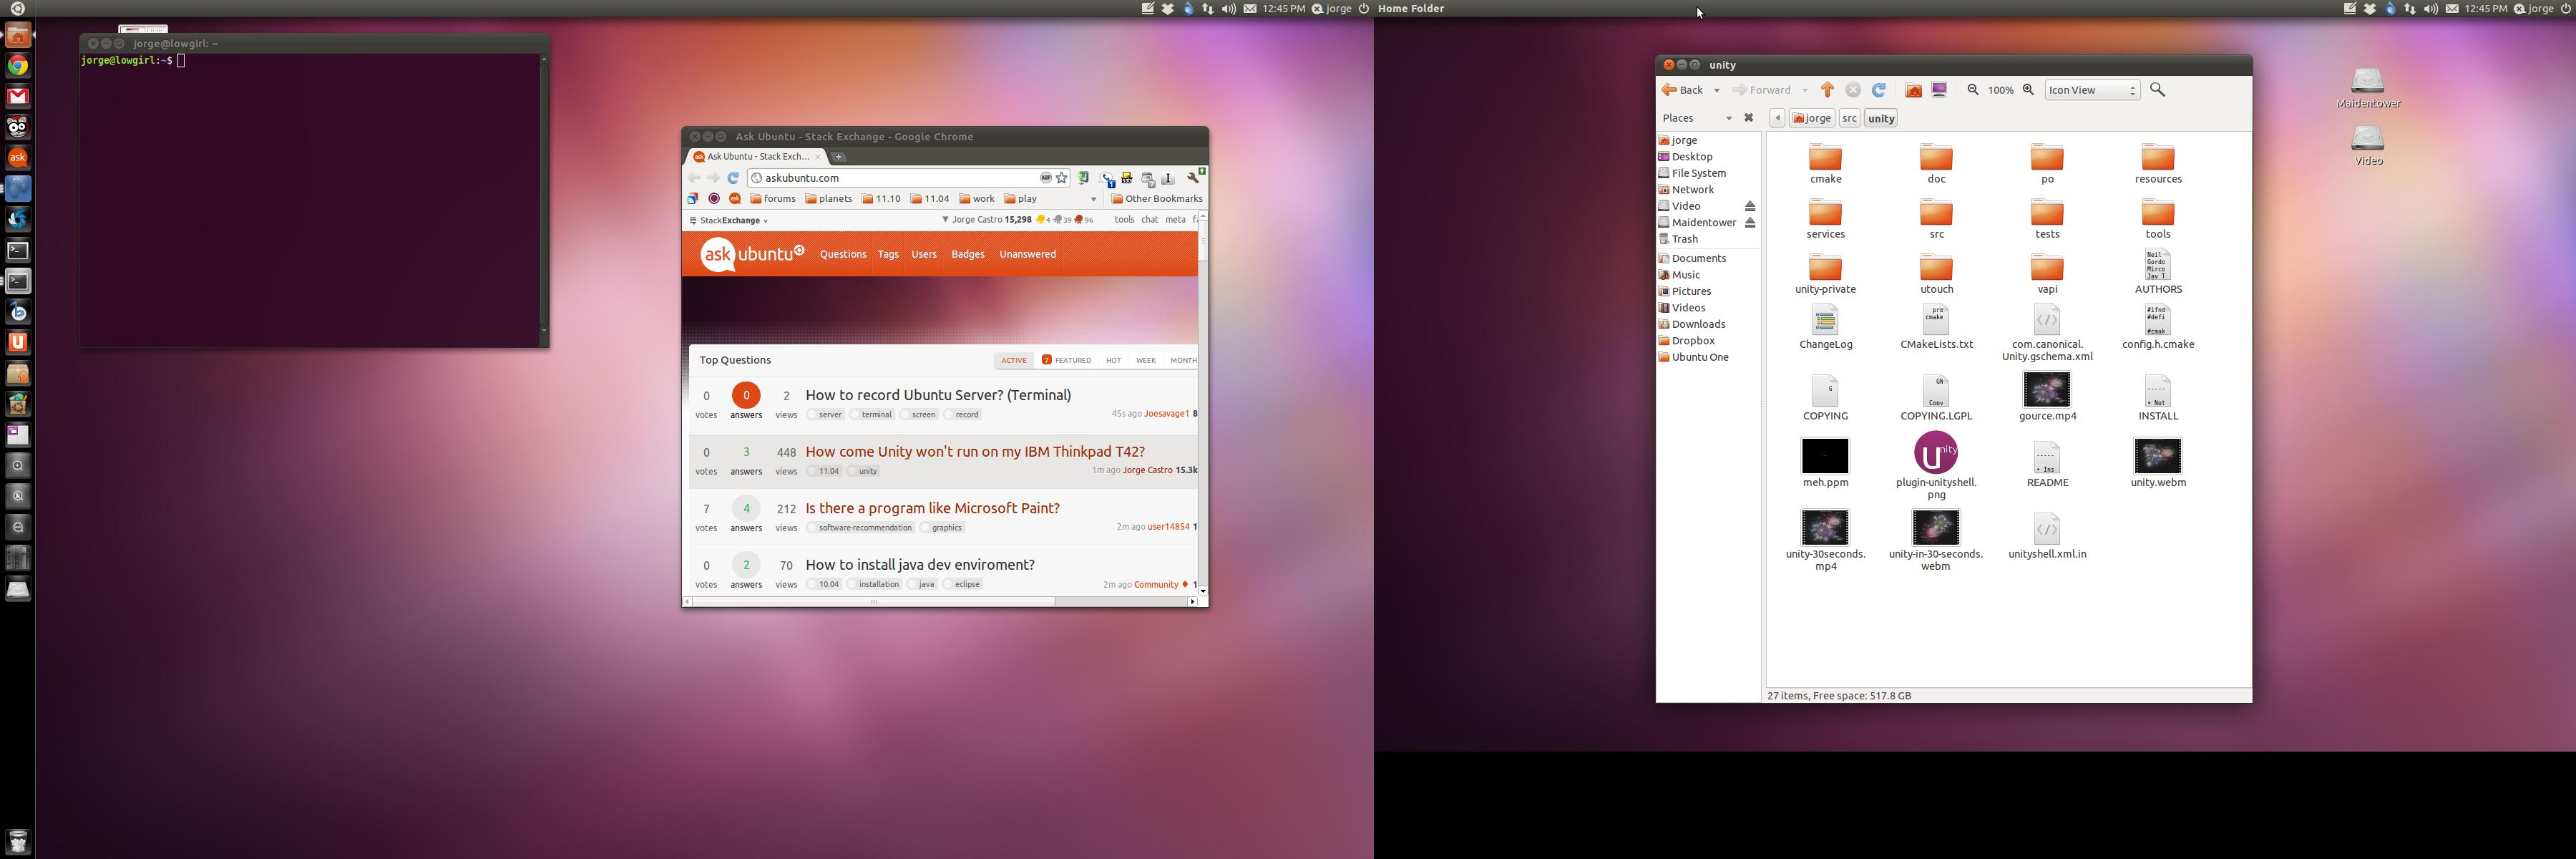 unity,multiple-monitors,ubuntu